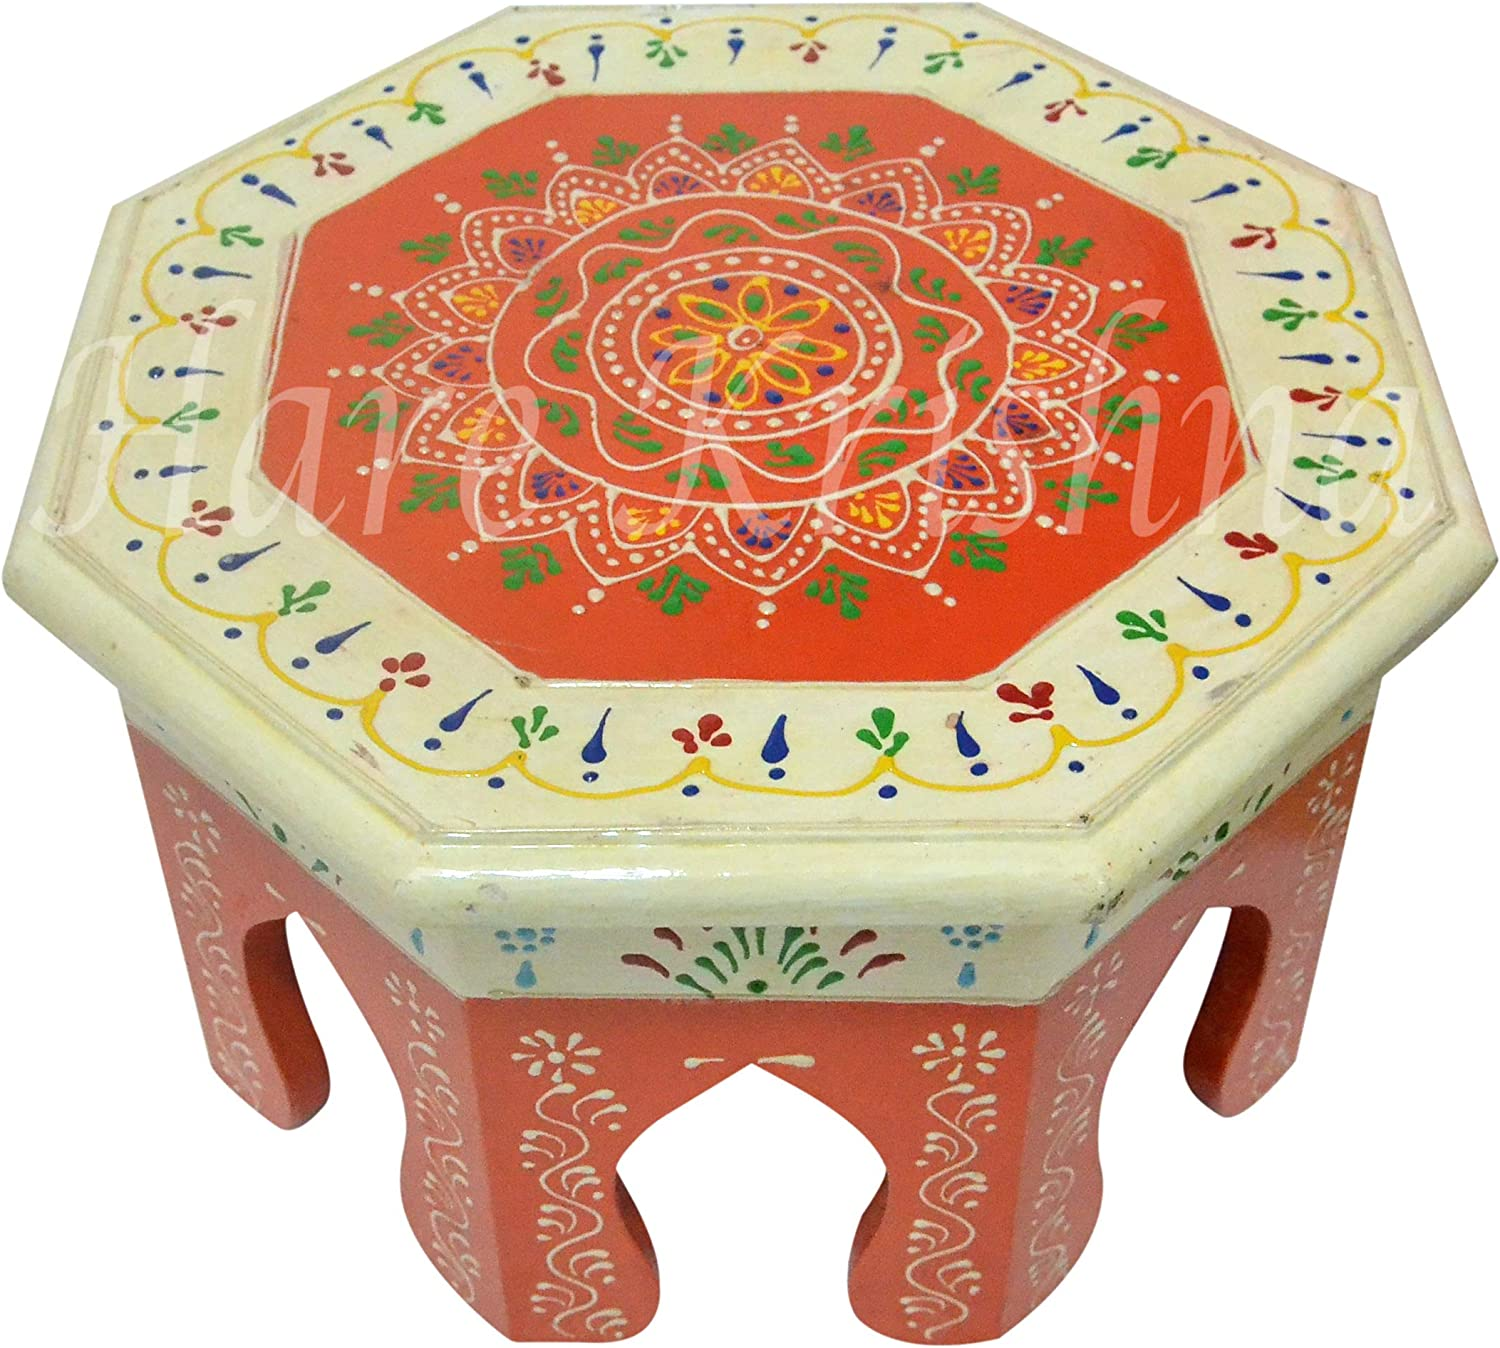 Small Footstool Painted Wooden Furniture Low Wooden Gift Side Table (White & Orange) 10 x 10 x 6 Inches